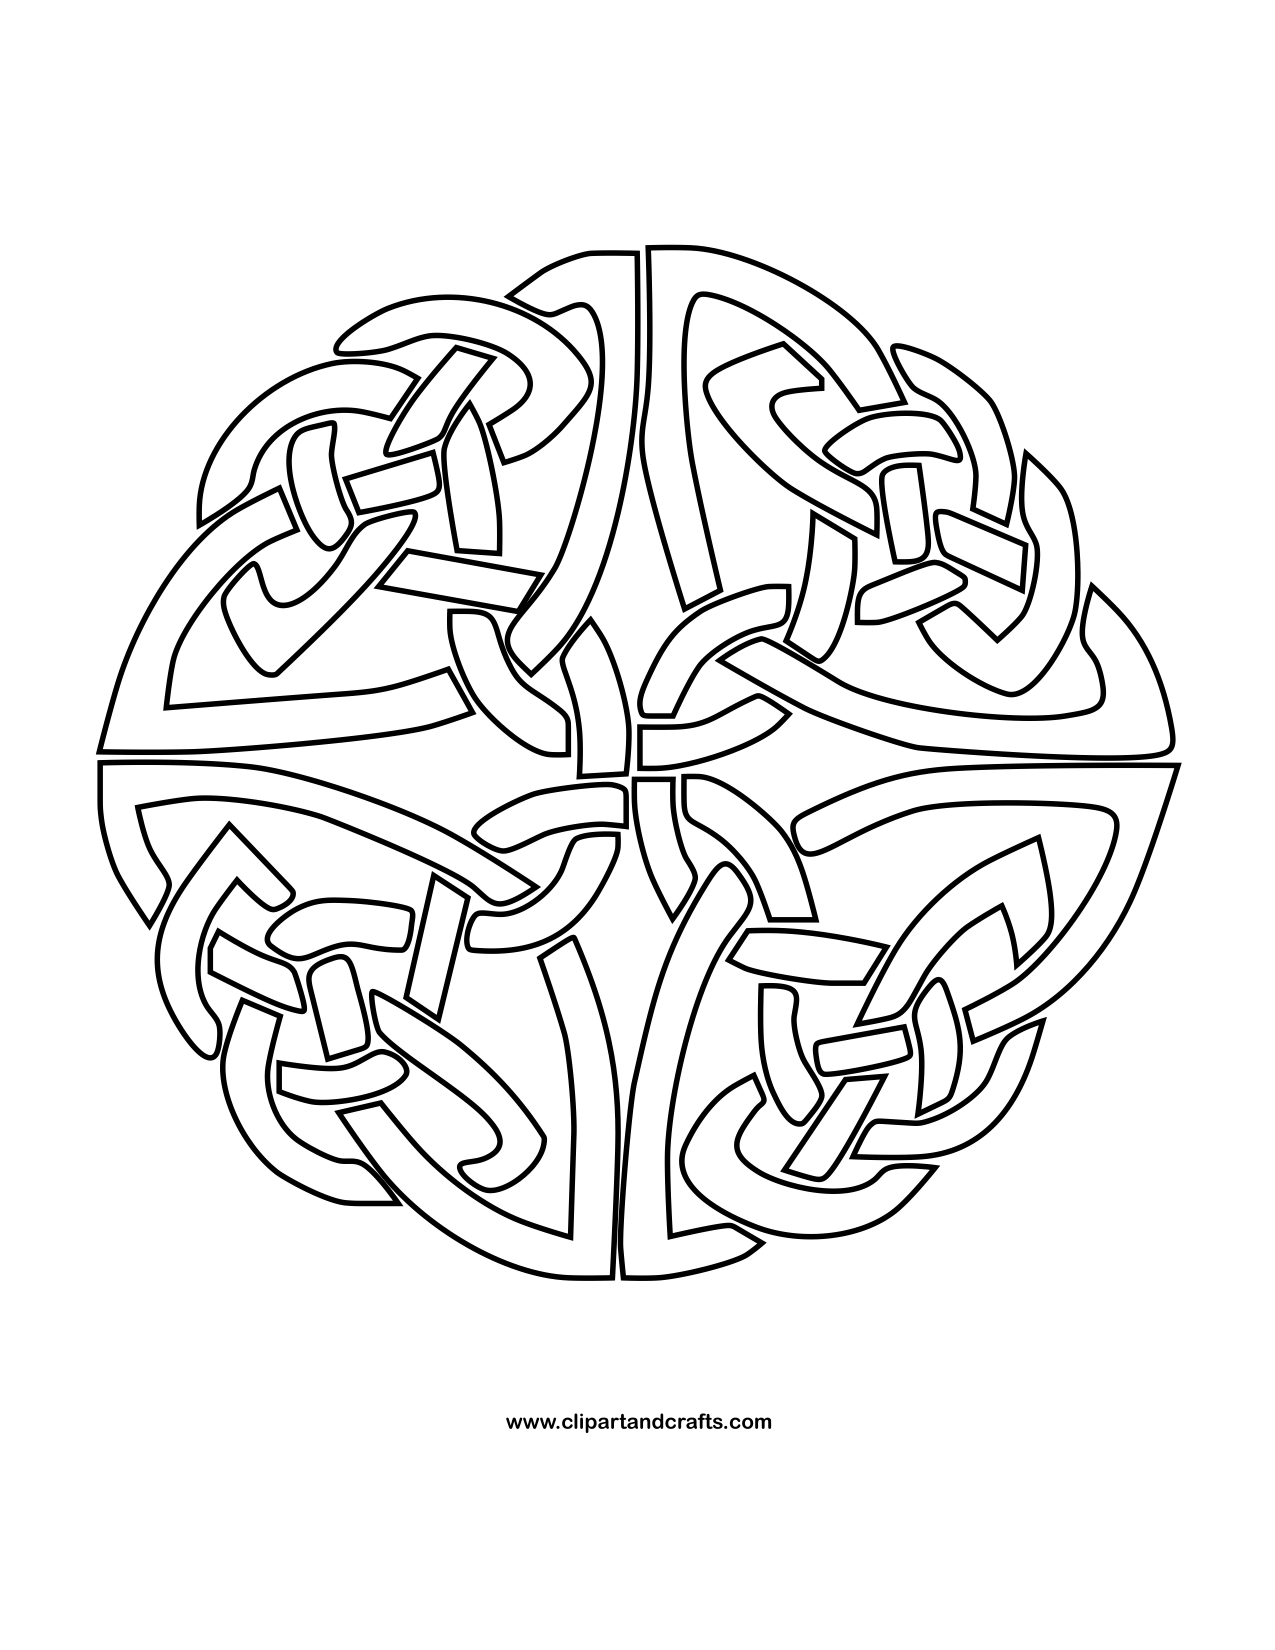 free celtic symbols coloring pages | Mandala Monday - More Free Celtic Mandalas to Color ...